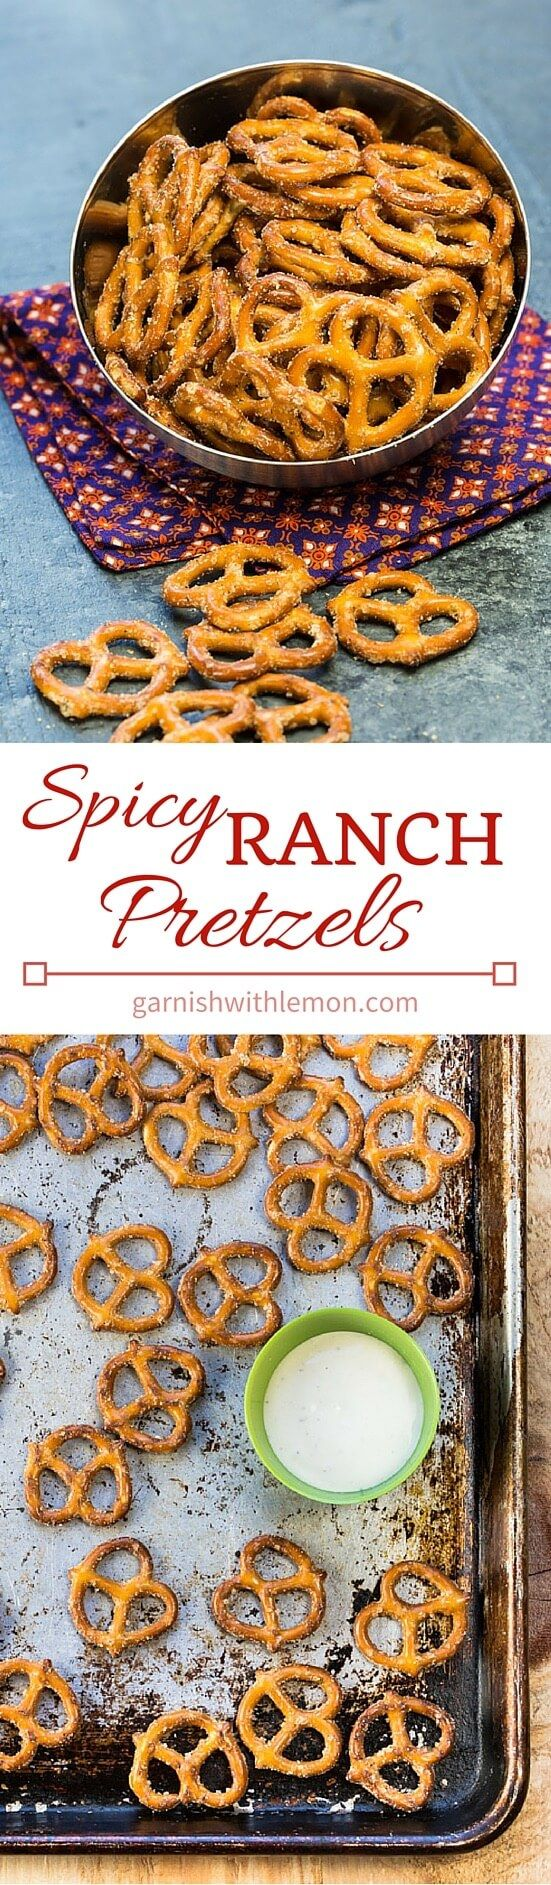 Need a quick and easy snack idea? These Spicy Ranch Pretzels are irresistible and couldn't be easier to make! ~ http://www.garnishwithlemon.com